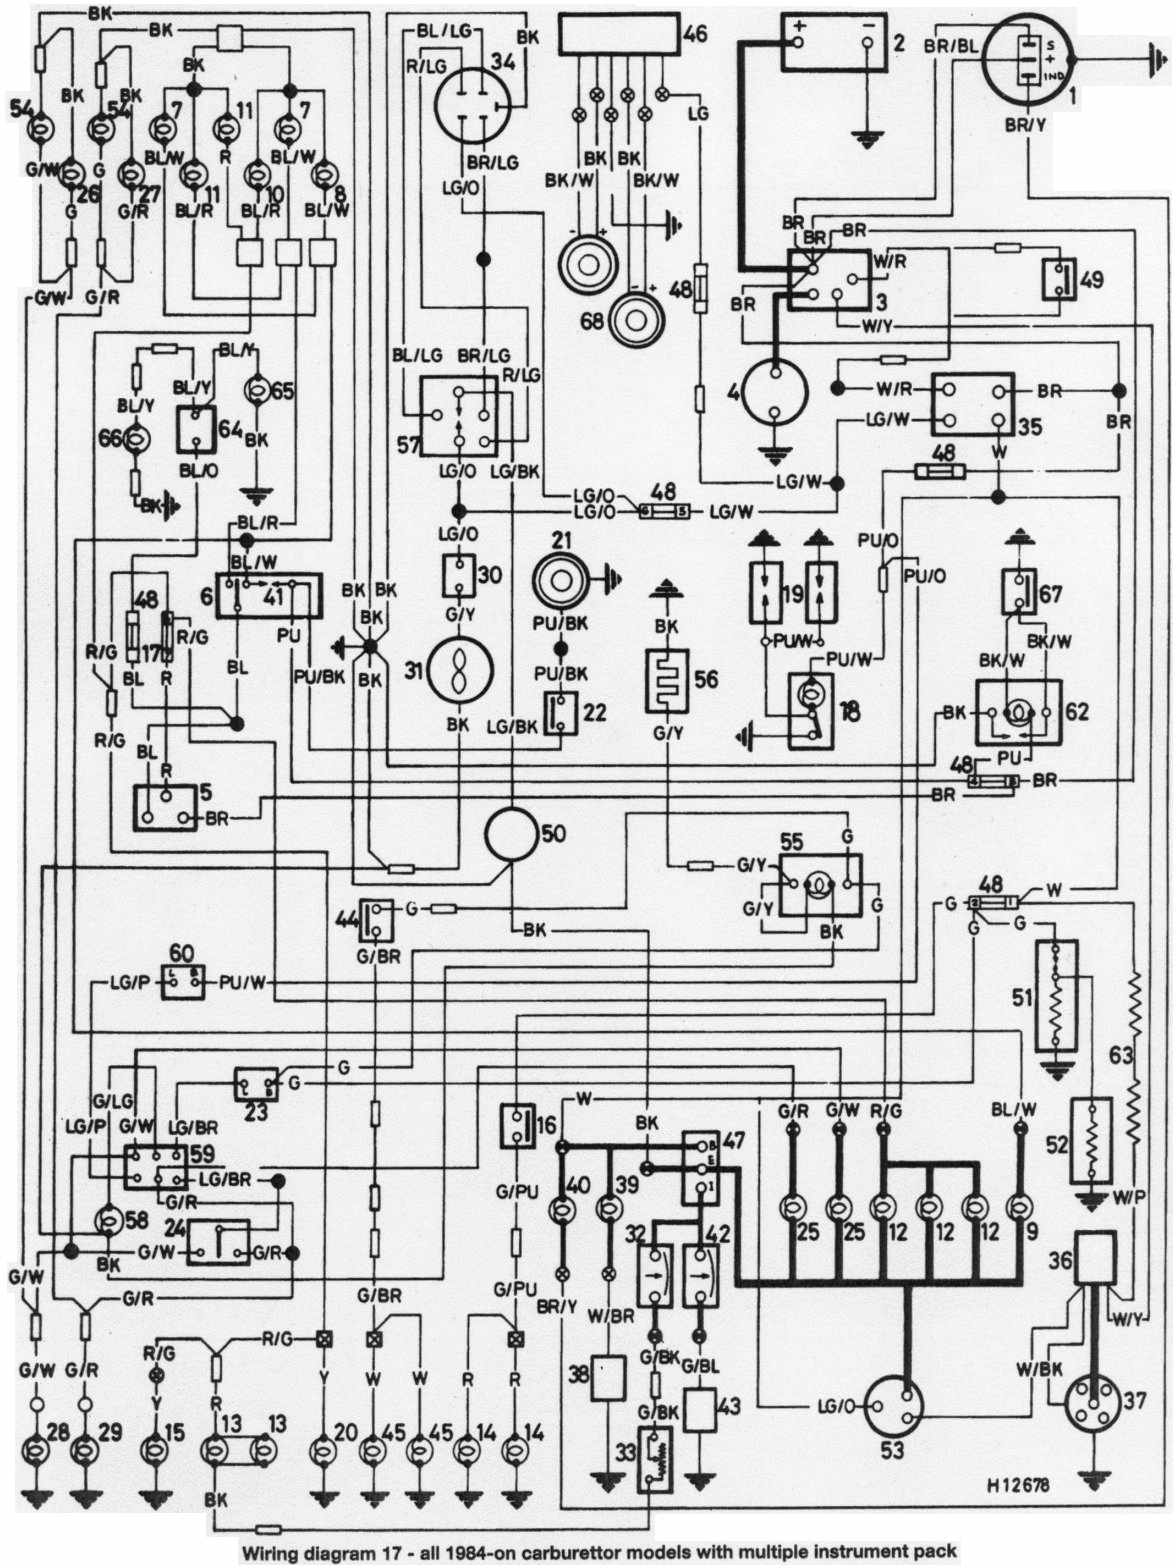 wiring diagram of 1984 onwards all mini series with multiple instrument pack?t=1508499130 18 [ bmw wiring diagram pdf ] file wind turbine yaw system bmw mini wiring diagrams at edmiracle.co